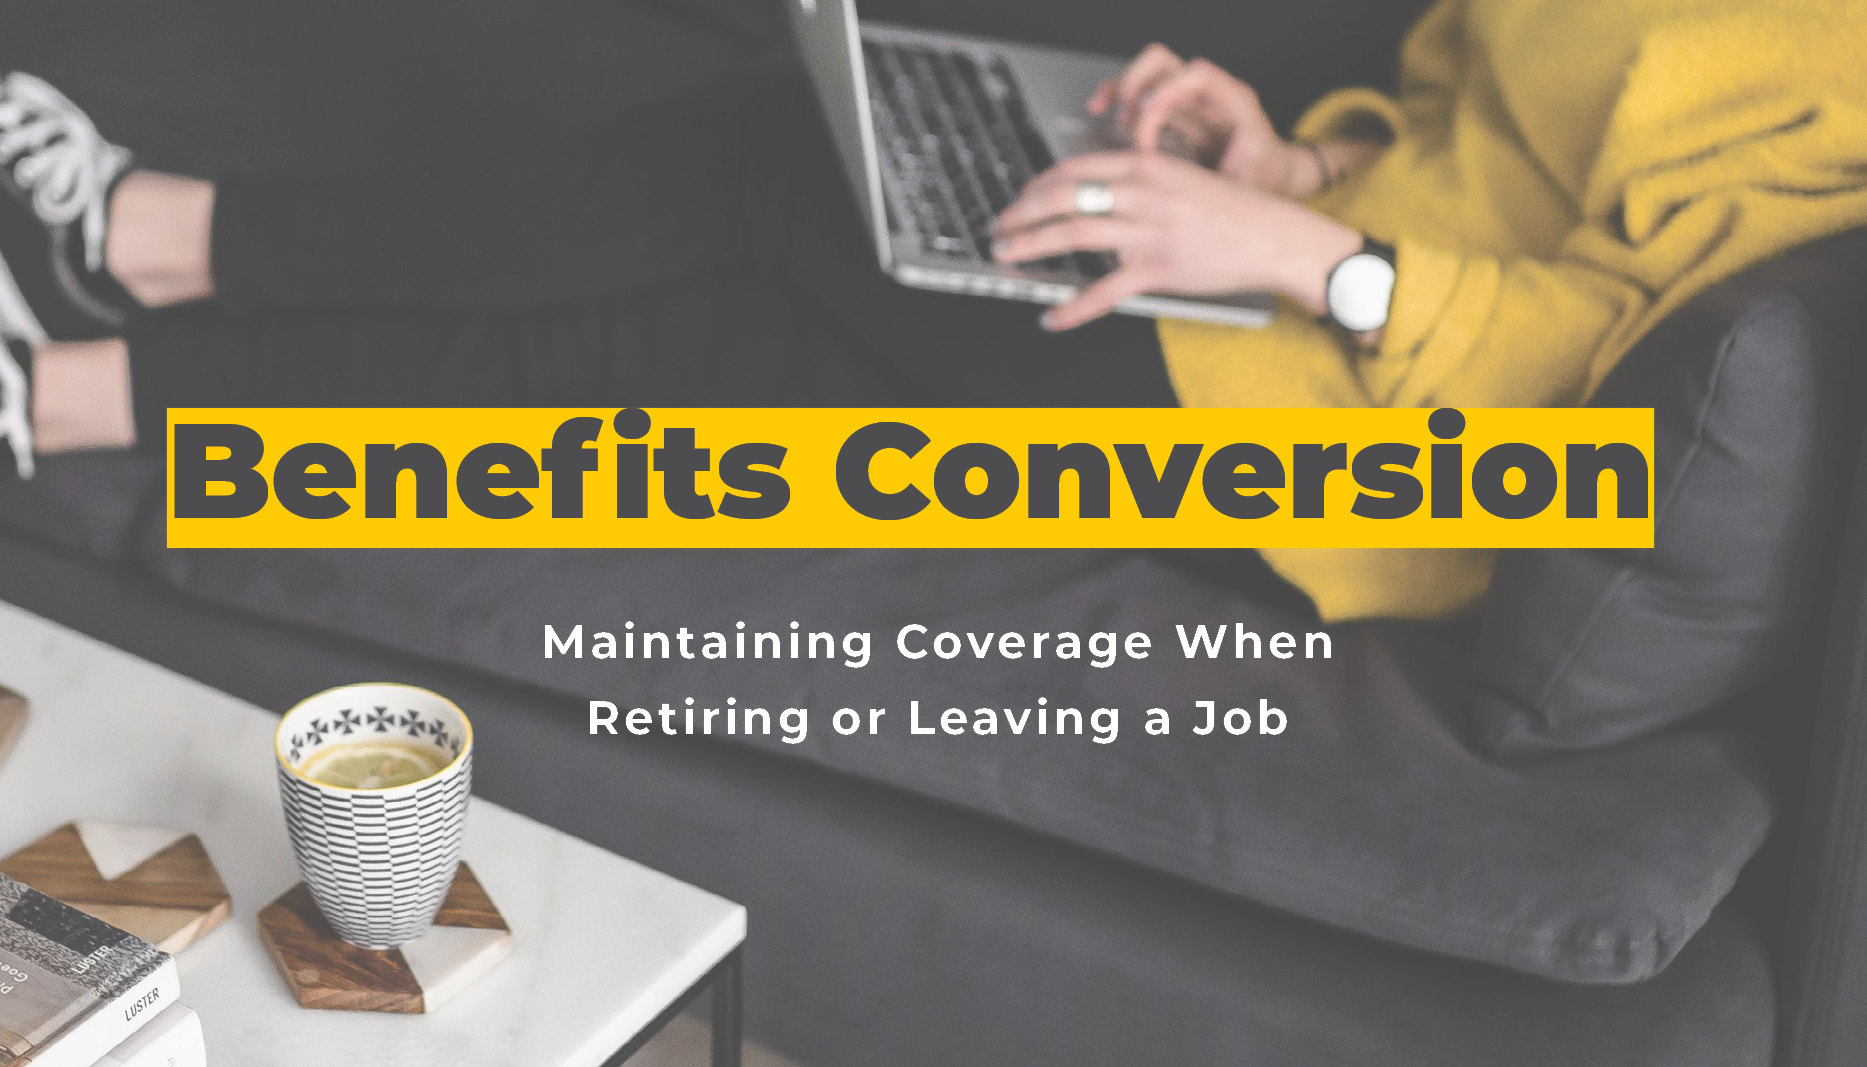 Benefits Conversion: Maintaining Coverage When Retiring or Leaving a Job | Benefits by Design